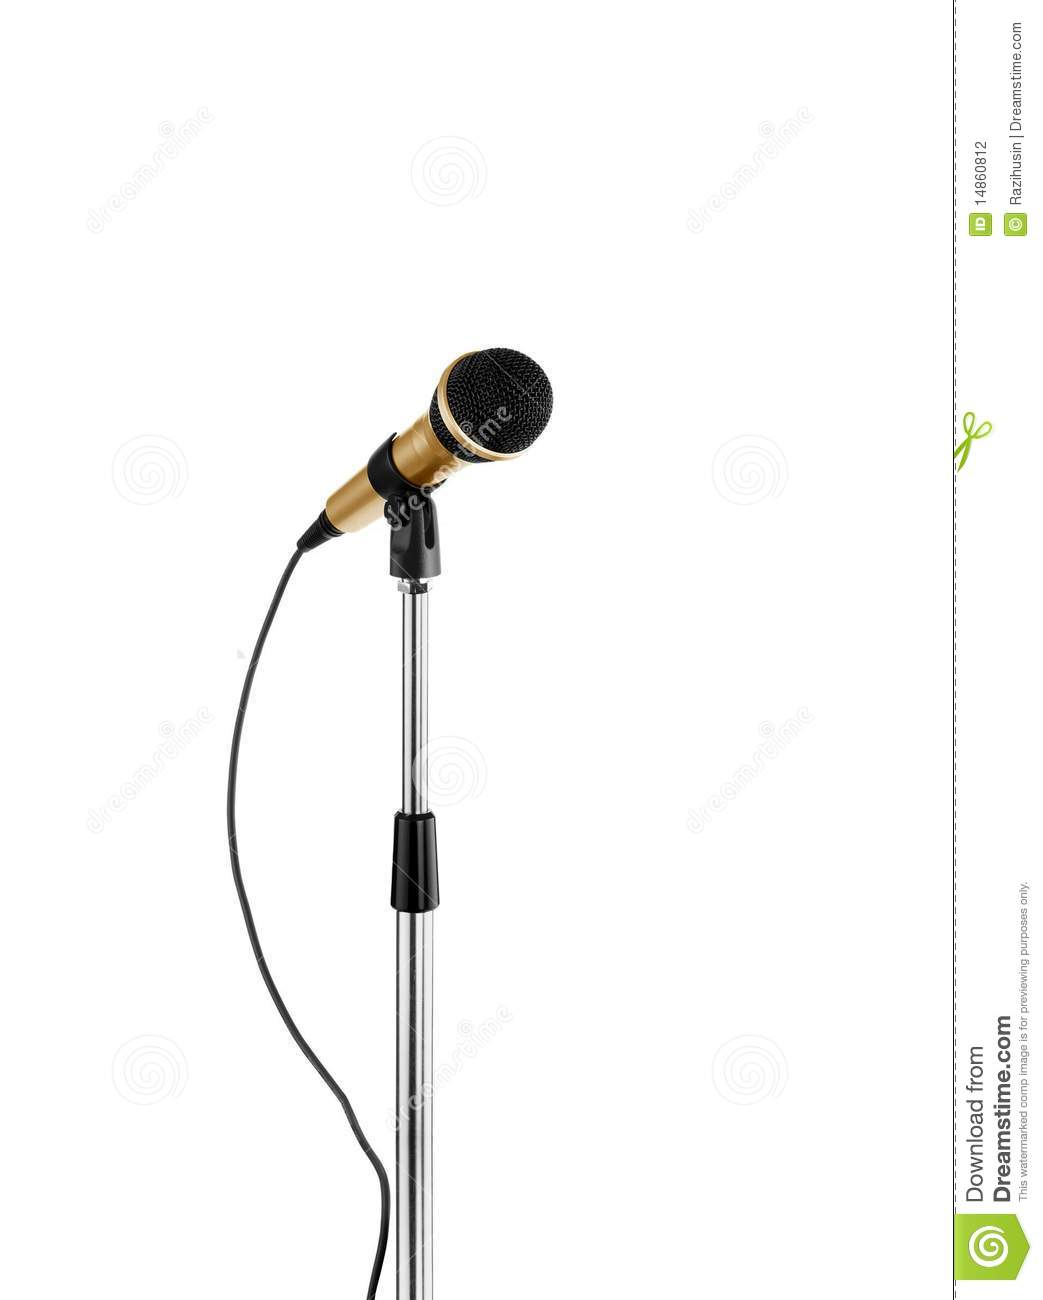 Microphone standing